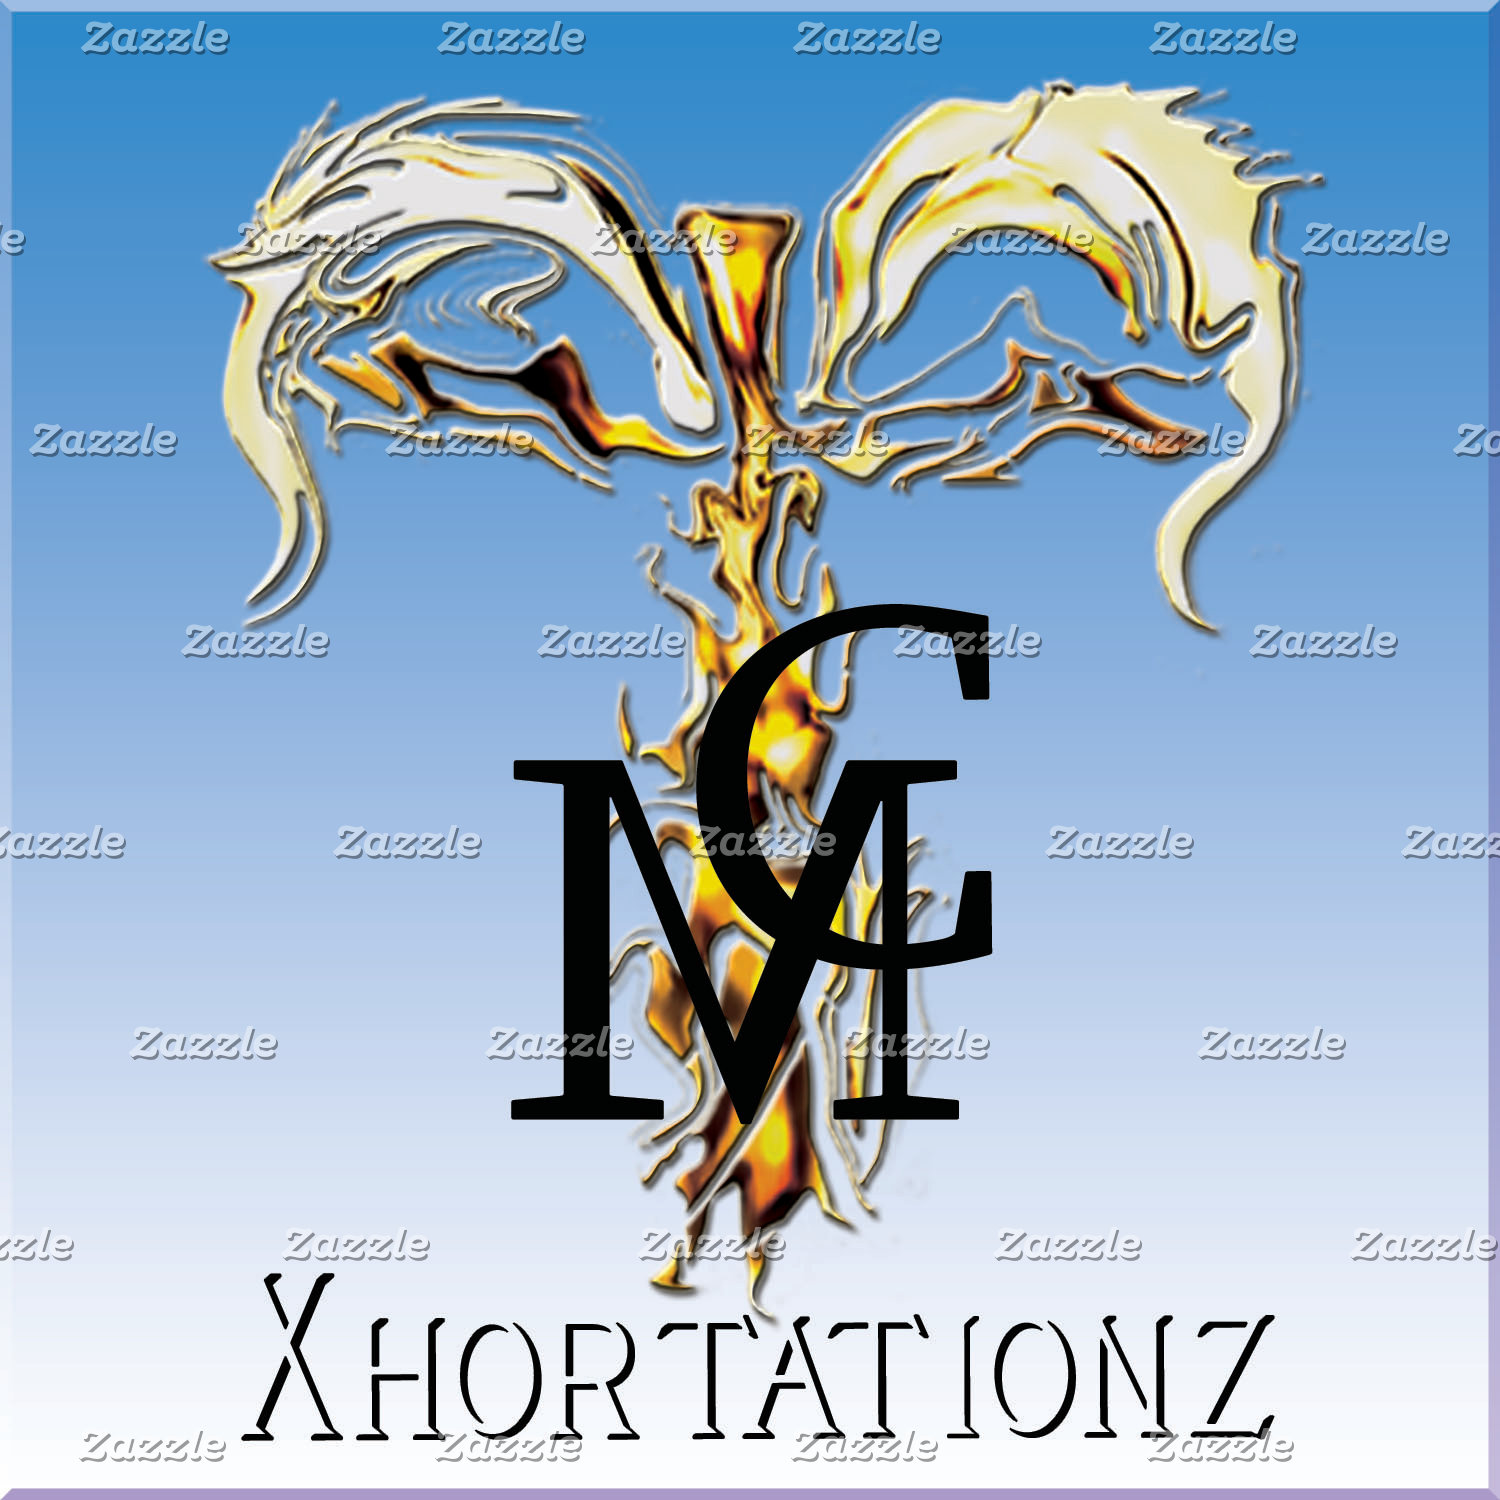 Xhortationz Gifts and Accessories™by Michael Crozz